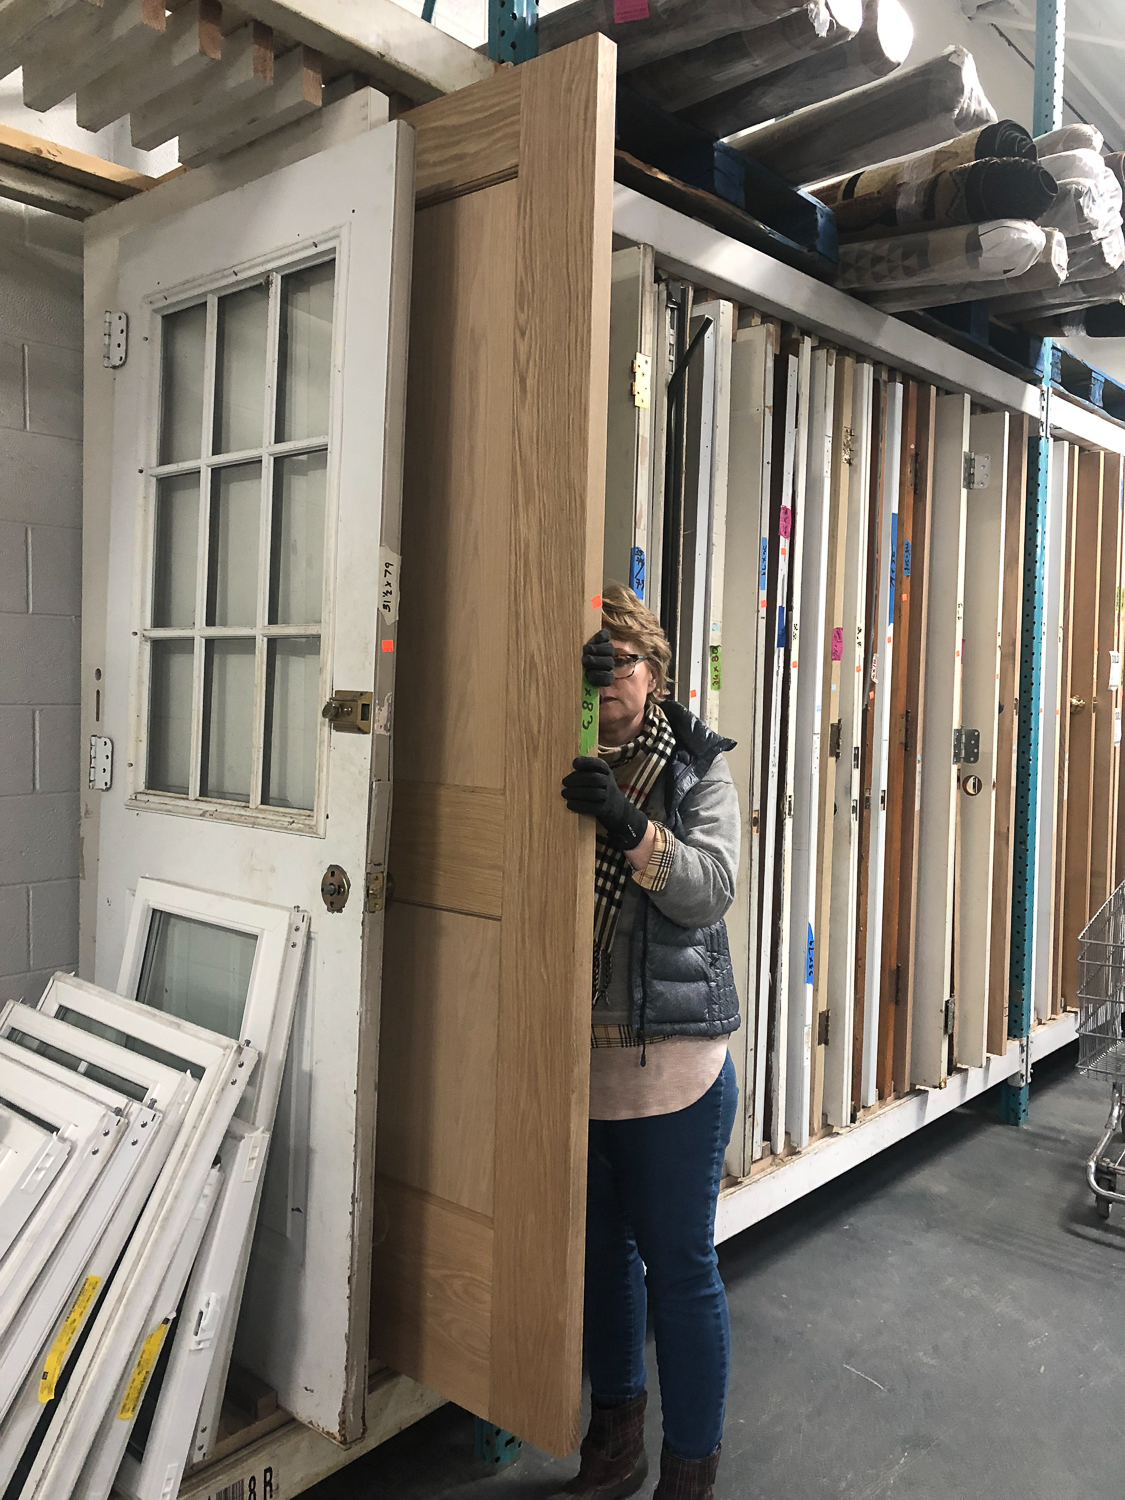 On a Saturday when my husband was hanging the drywall, I decided to take a trip to the local Habitat for Humanity Restore with my mom and see what I could find. This is an amazing organization, and I love to support them when I can. Lucky for me, I found two matching 8' solid oak doors for $25 a piece! These would be around $500 a piece brand new, so this was a huge savings and a rare find!